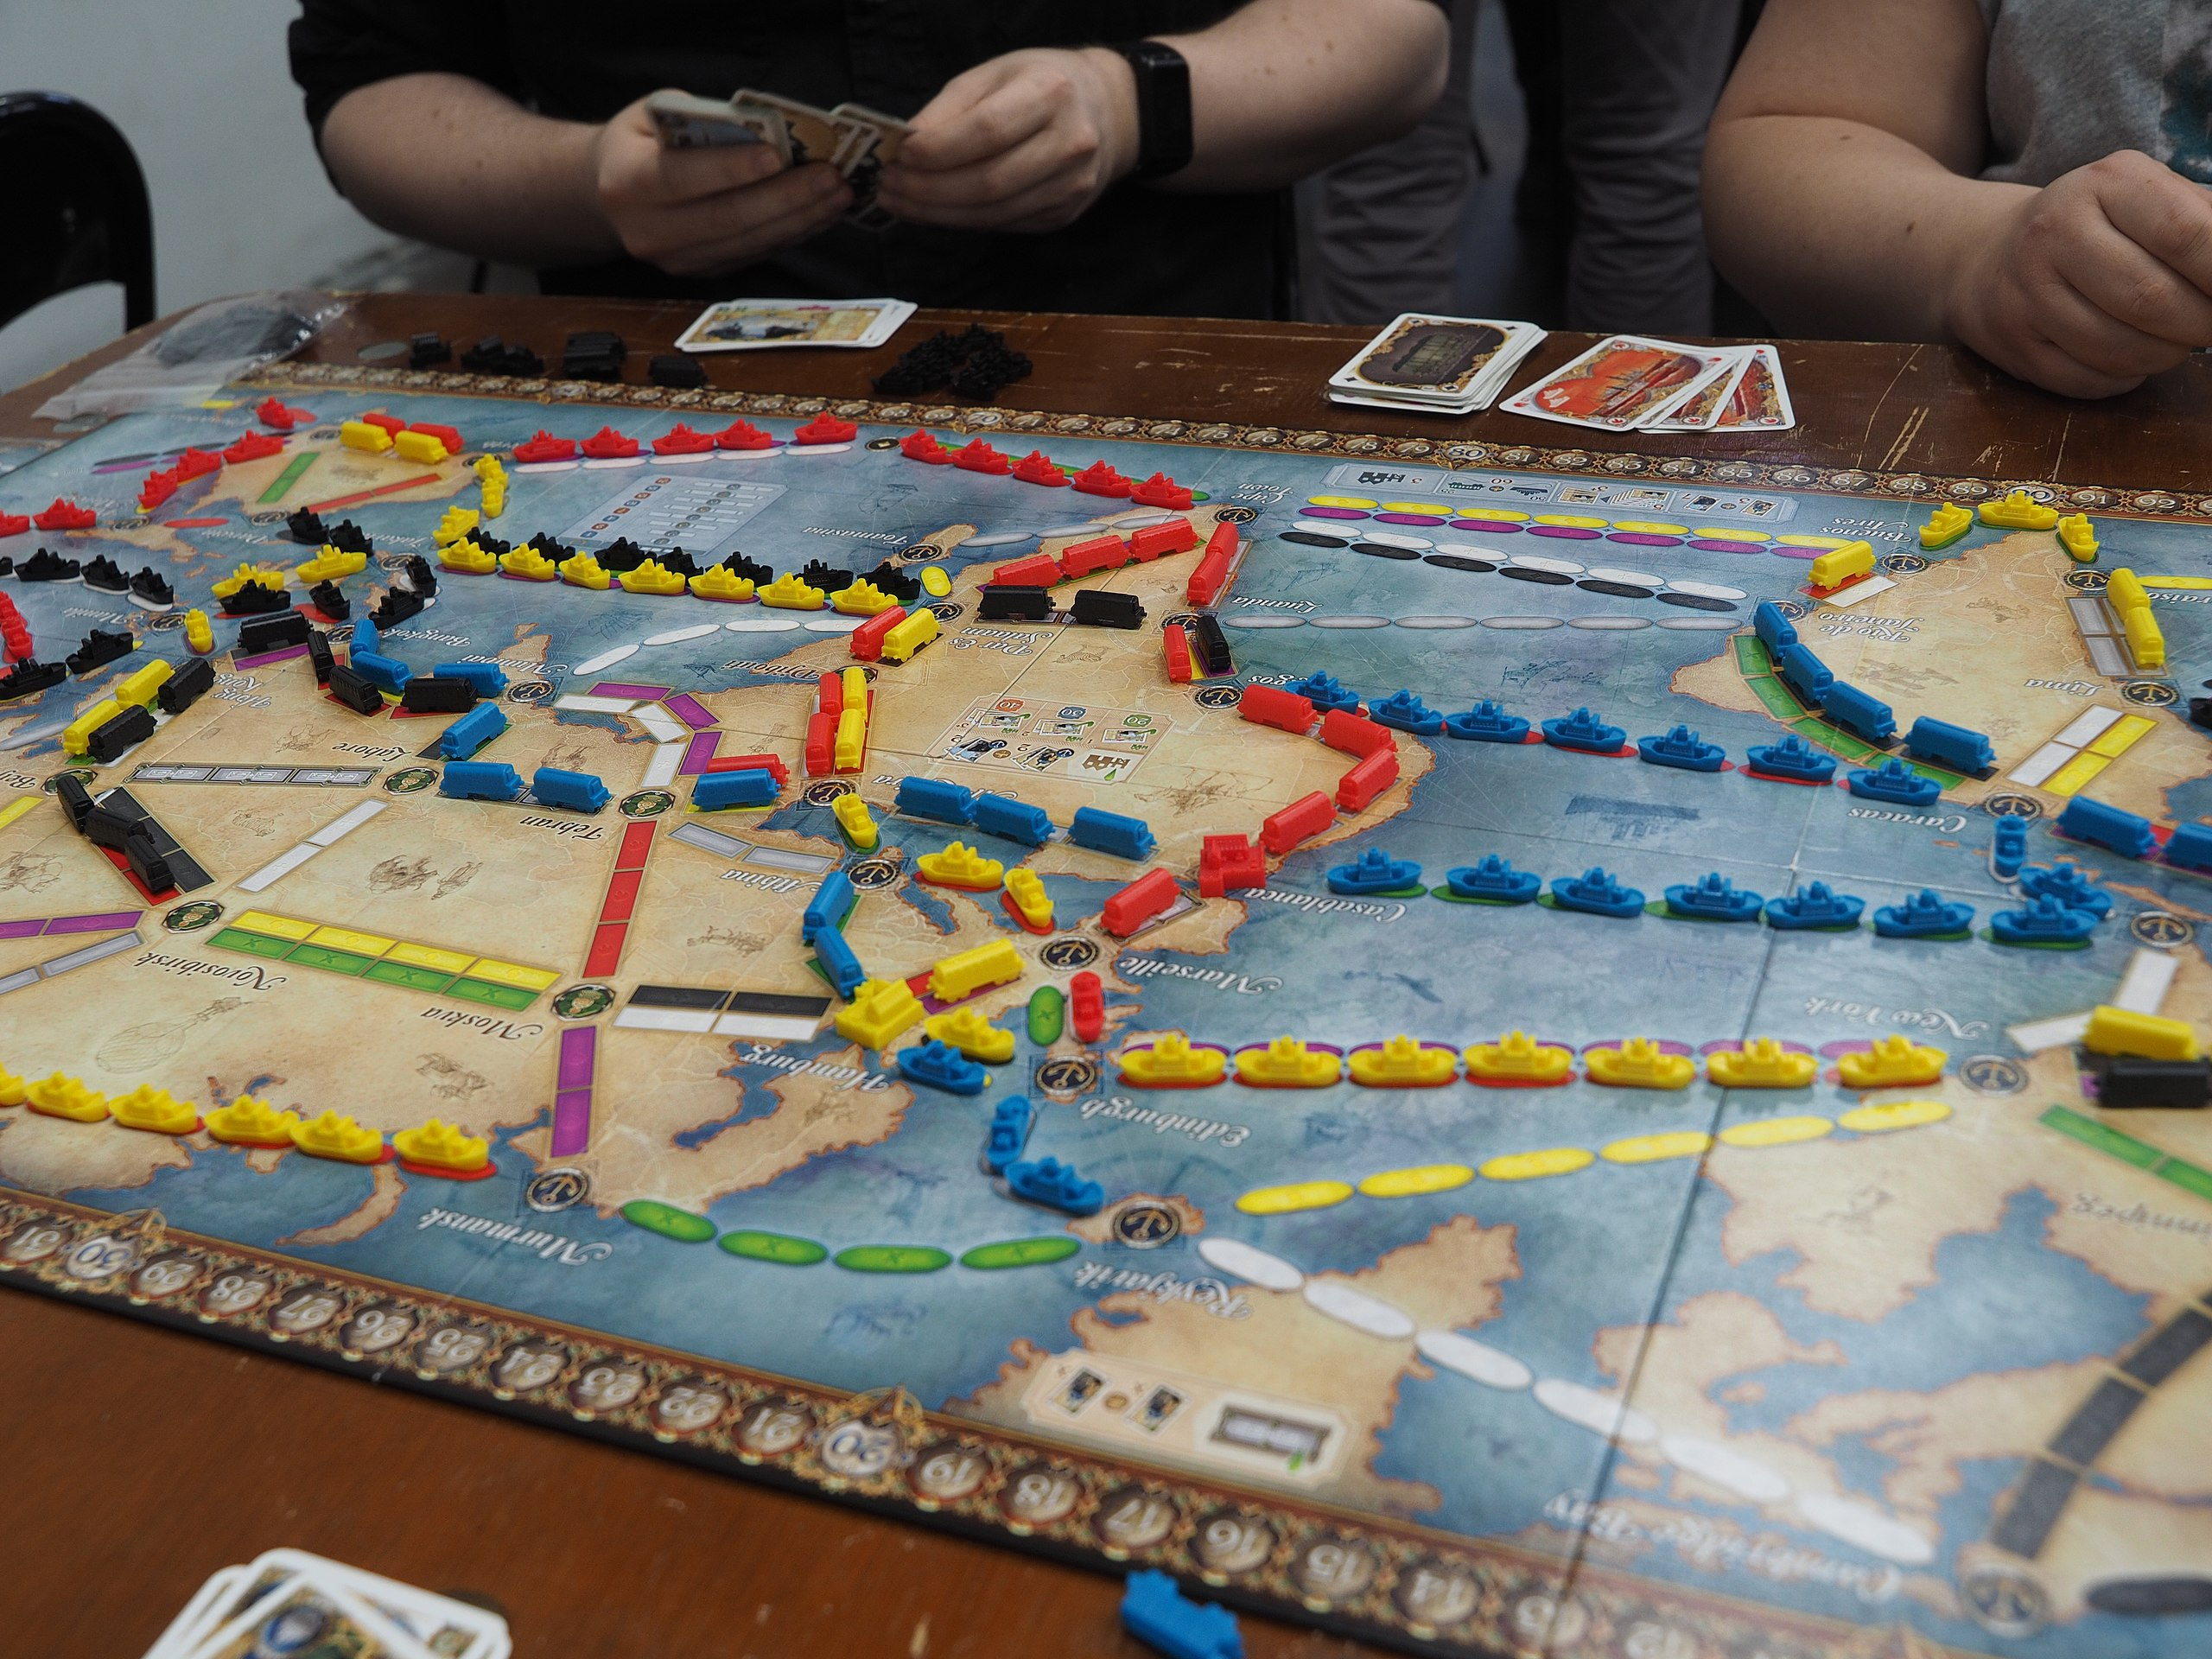 Playing Ticket to Ride at an annual board game festival in Helsinki, Finland; photo by JIP via CreativeCommons